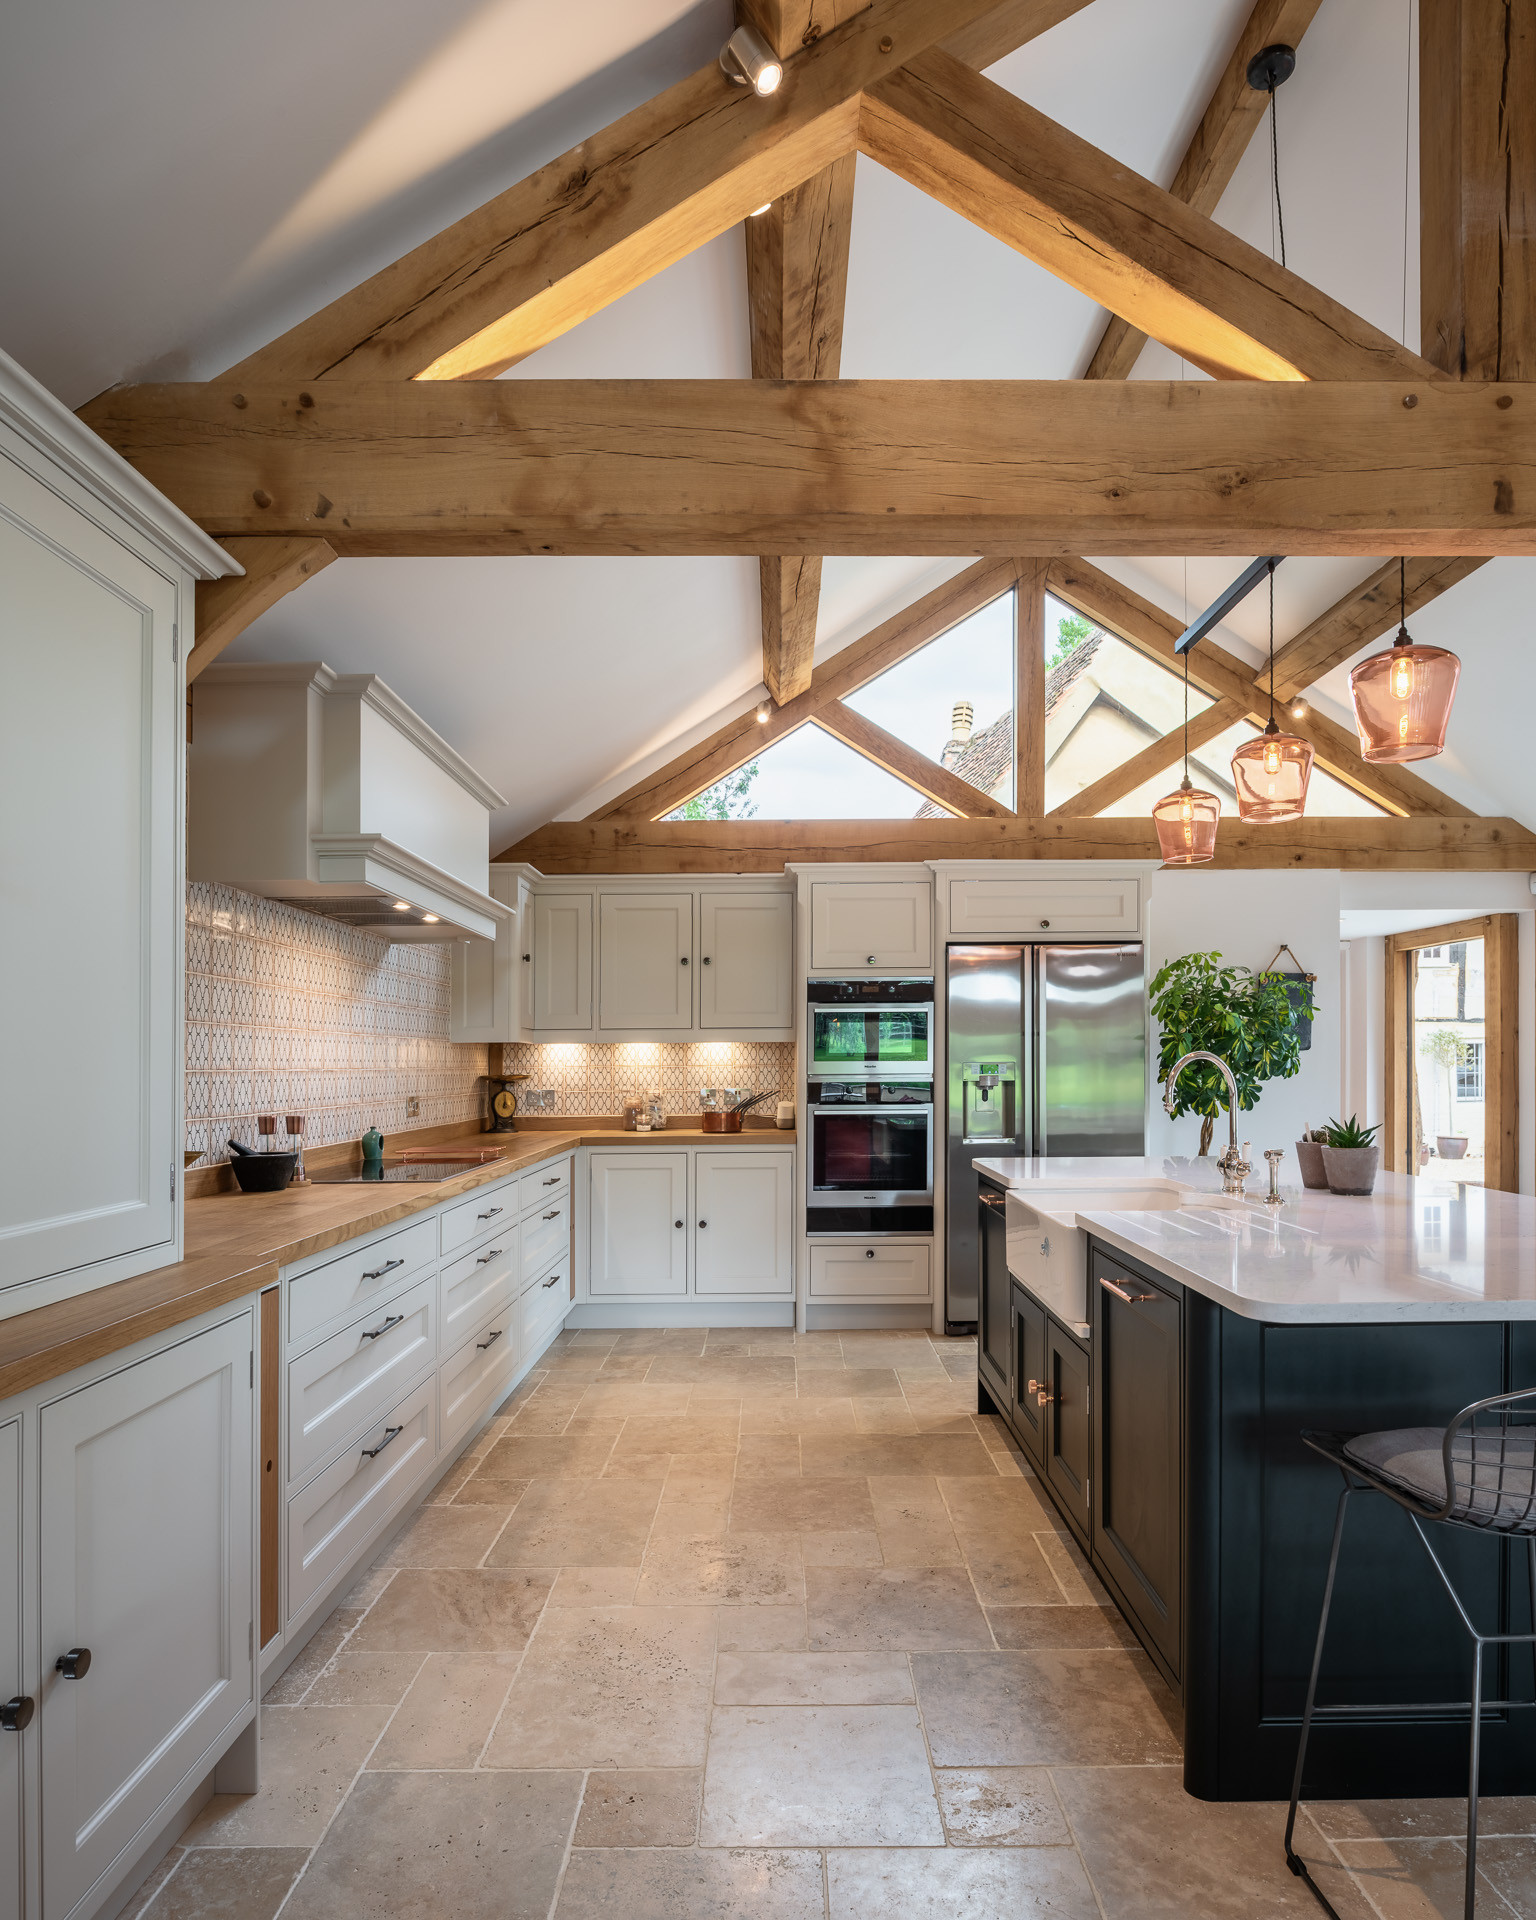 75 Beautiful Vaulted Ceiling Kitchen Pictures Ideas April 2021 Houzz